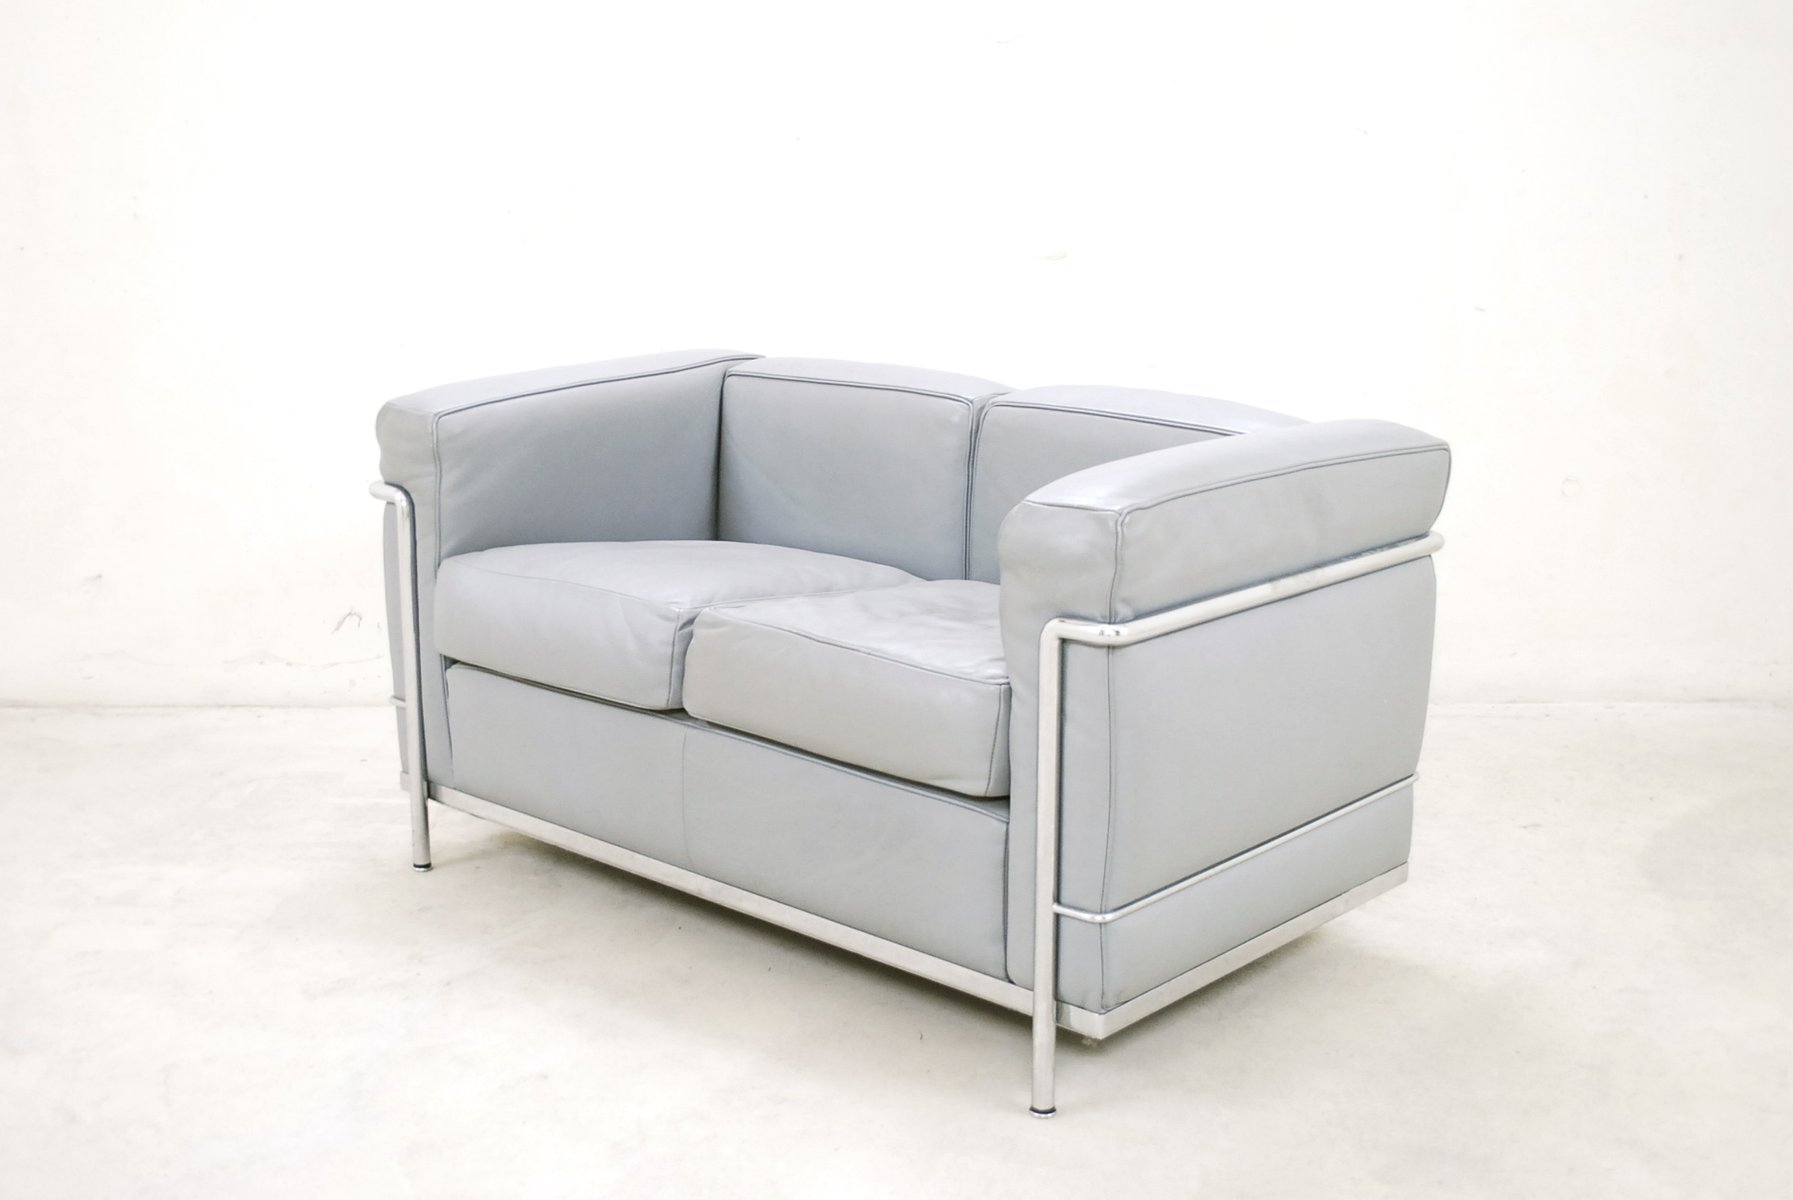 Model Lc2 Leather Sofa By Le Corbusier For Cassina 1985 For Sale At Pamono